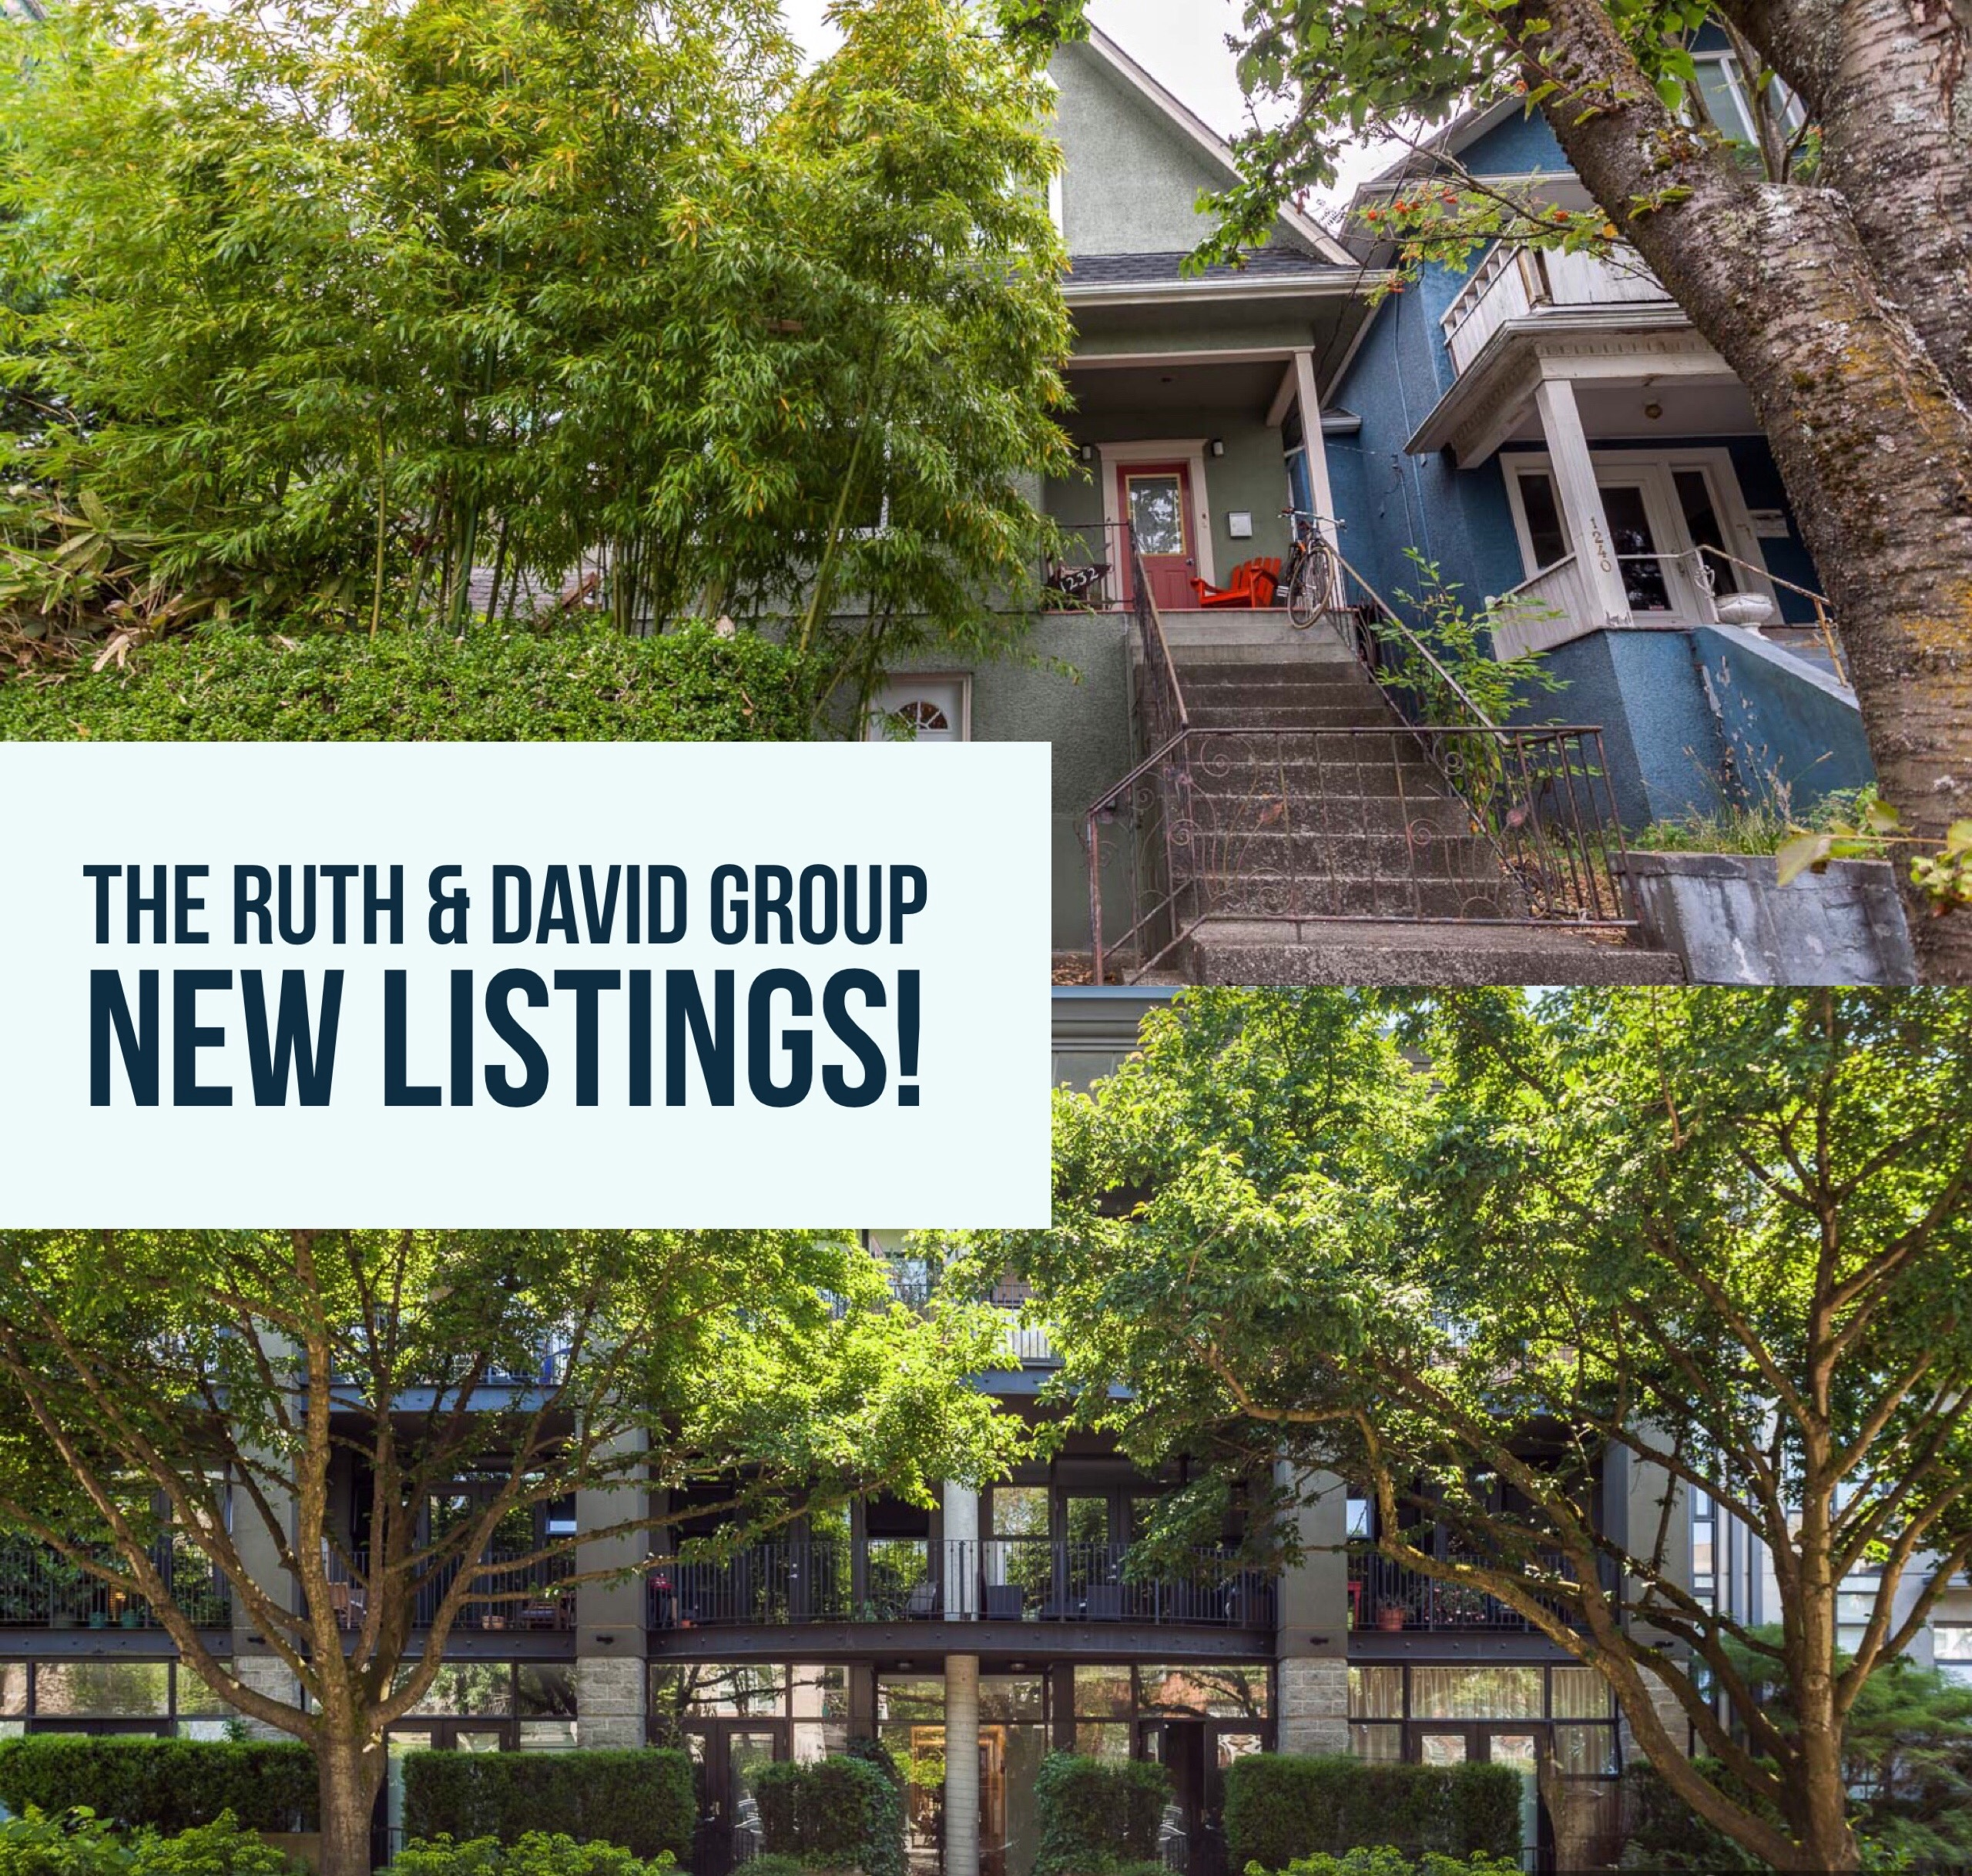 The Ruth & David Group - New Listings